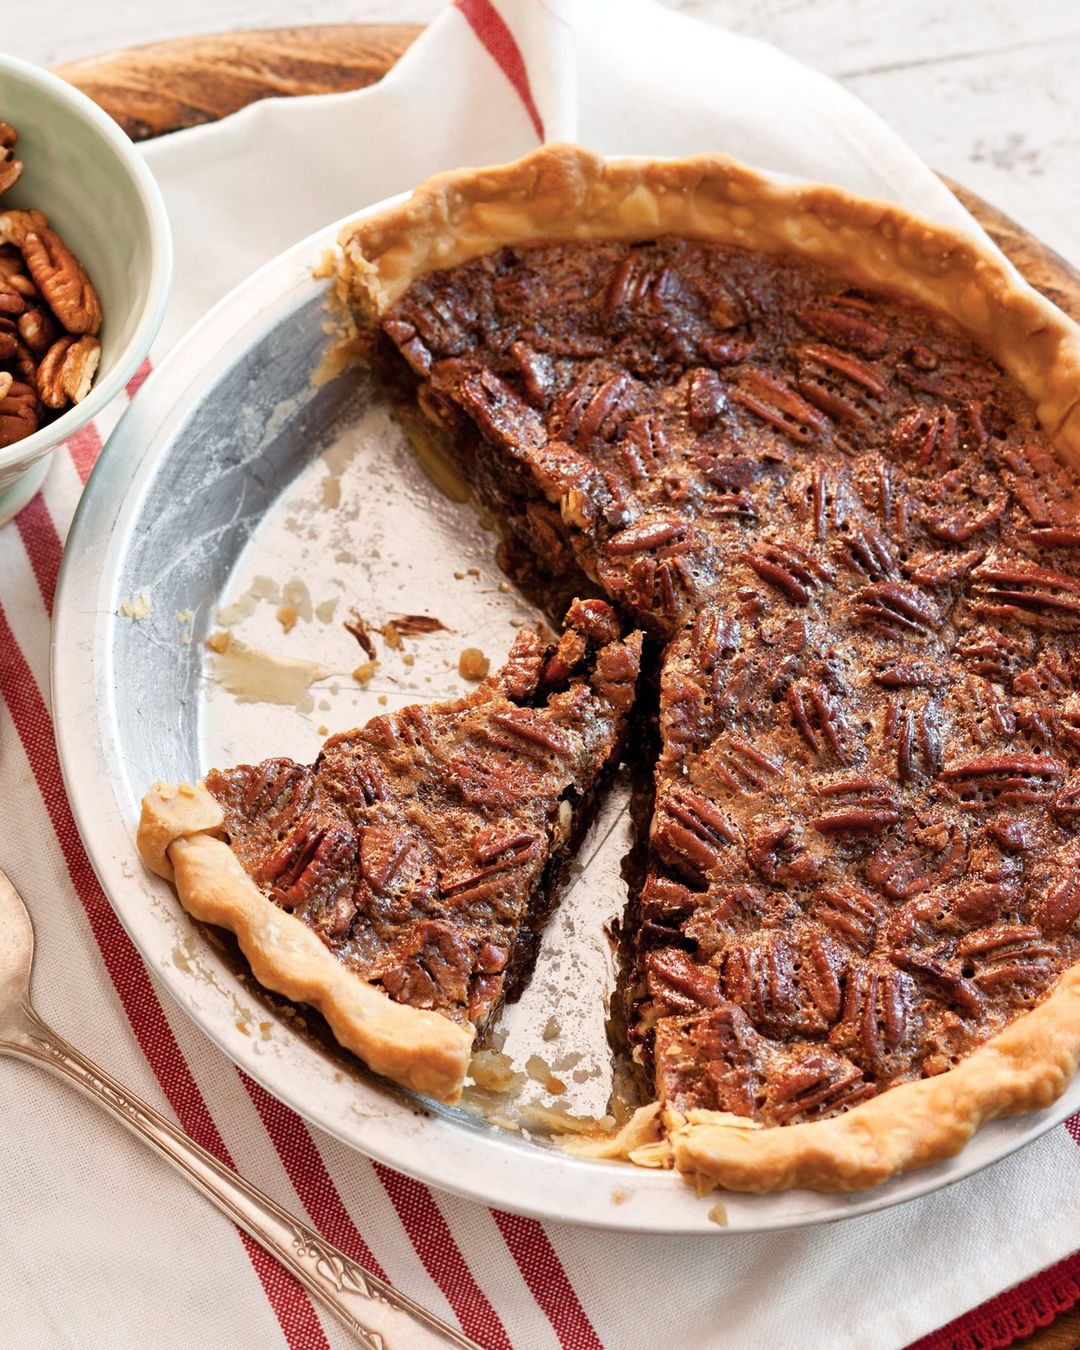 15 gorgeous pies we can't wait to try this thanksgiving